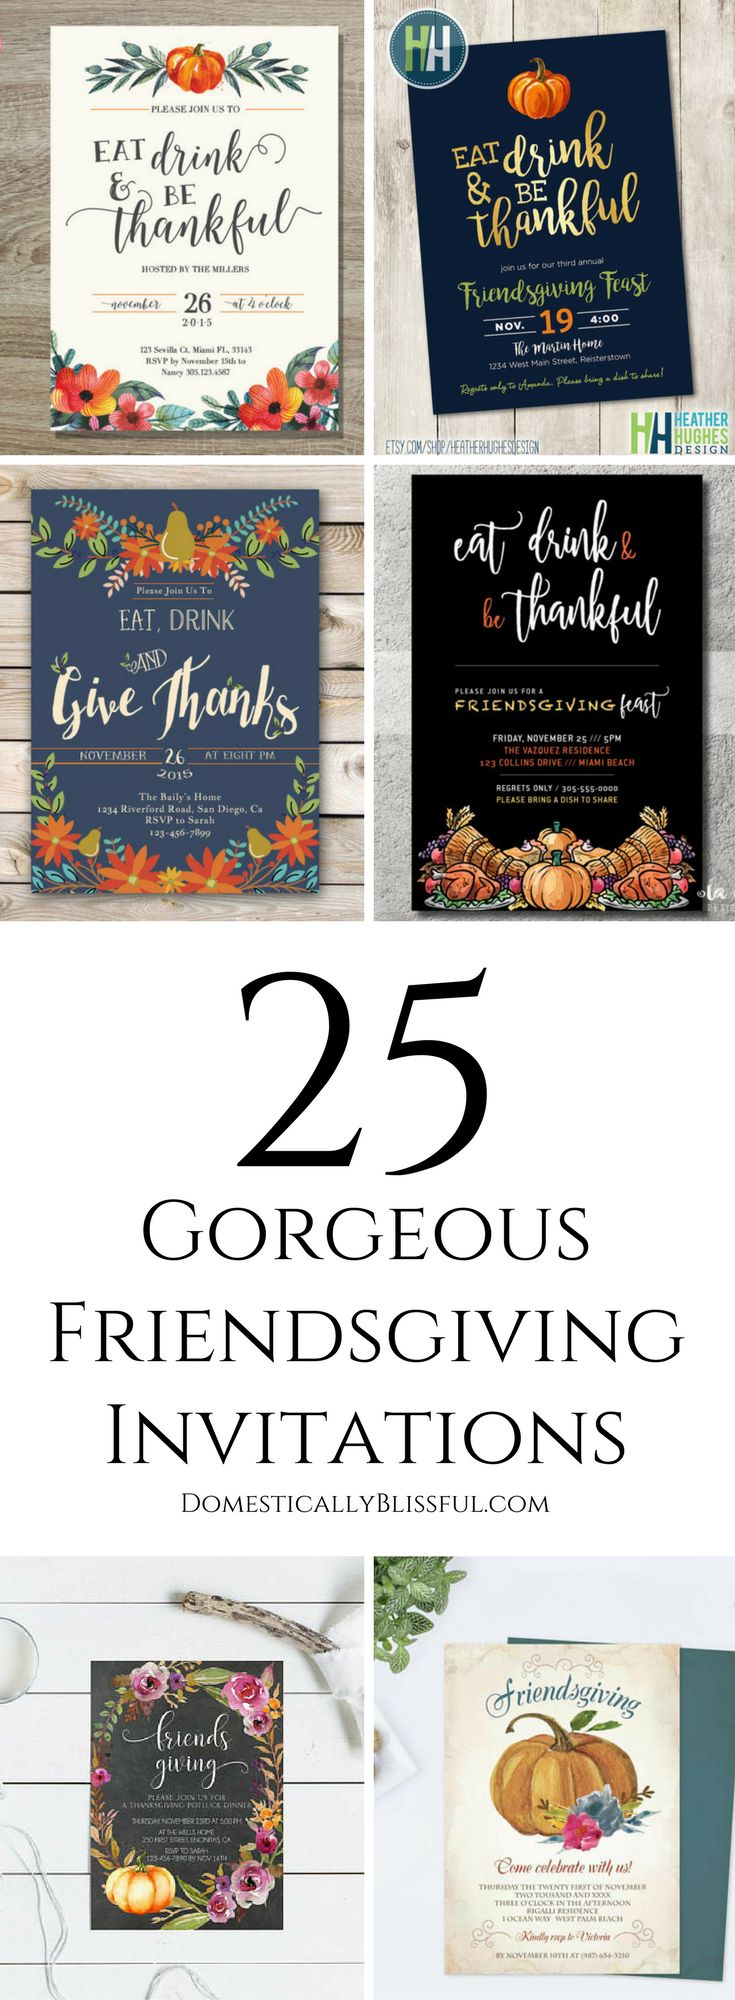 25 gorgeous Friendsgiving invitations for your annual Friendsgiving gathering with all of your friends & family this fall! | friendsgiving invites | friends giving | thanksgiving invitations | thanksgiving invites | etsy shop | etsy invitations | etsy invites | printable | printables | download | thankful | giving | give thanks | eat drink and be thankful | eat drink and give thanks |